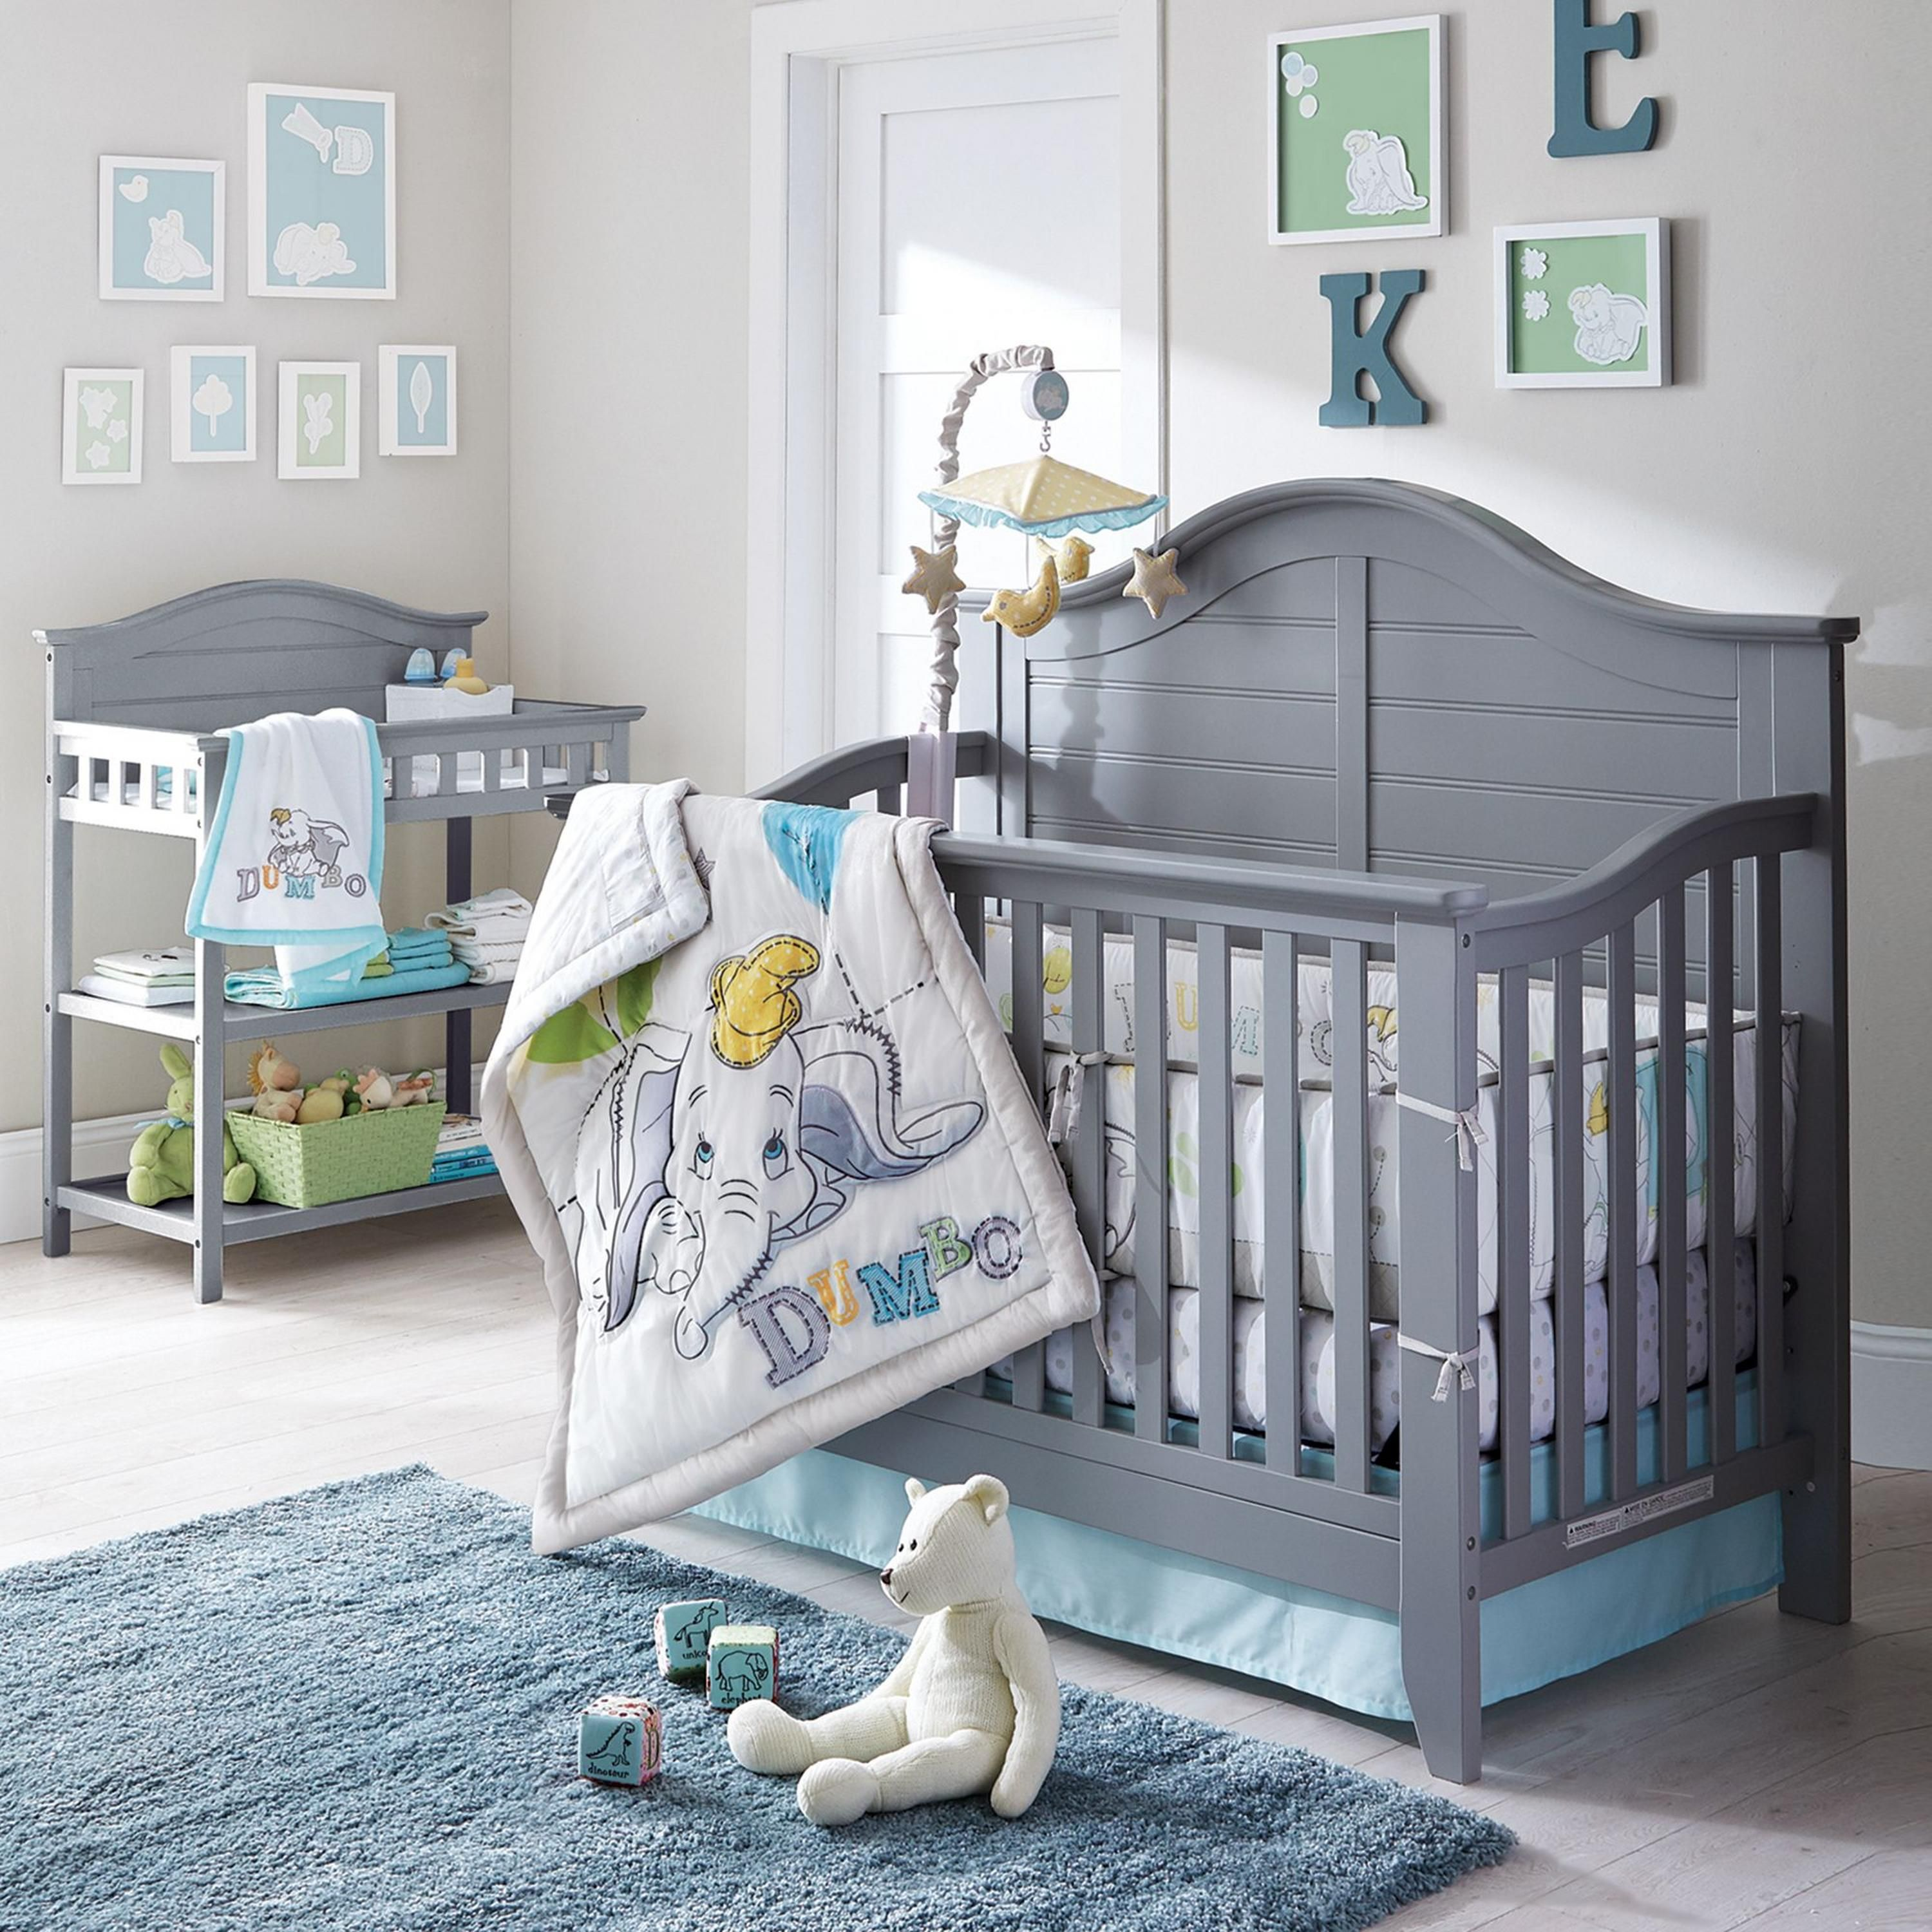 Buy Dumbo Oh So Cute Nursery Collection 6 Piece Bedding Set Online